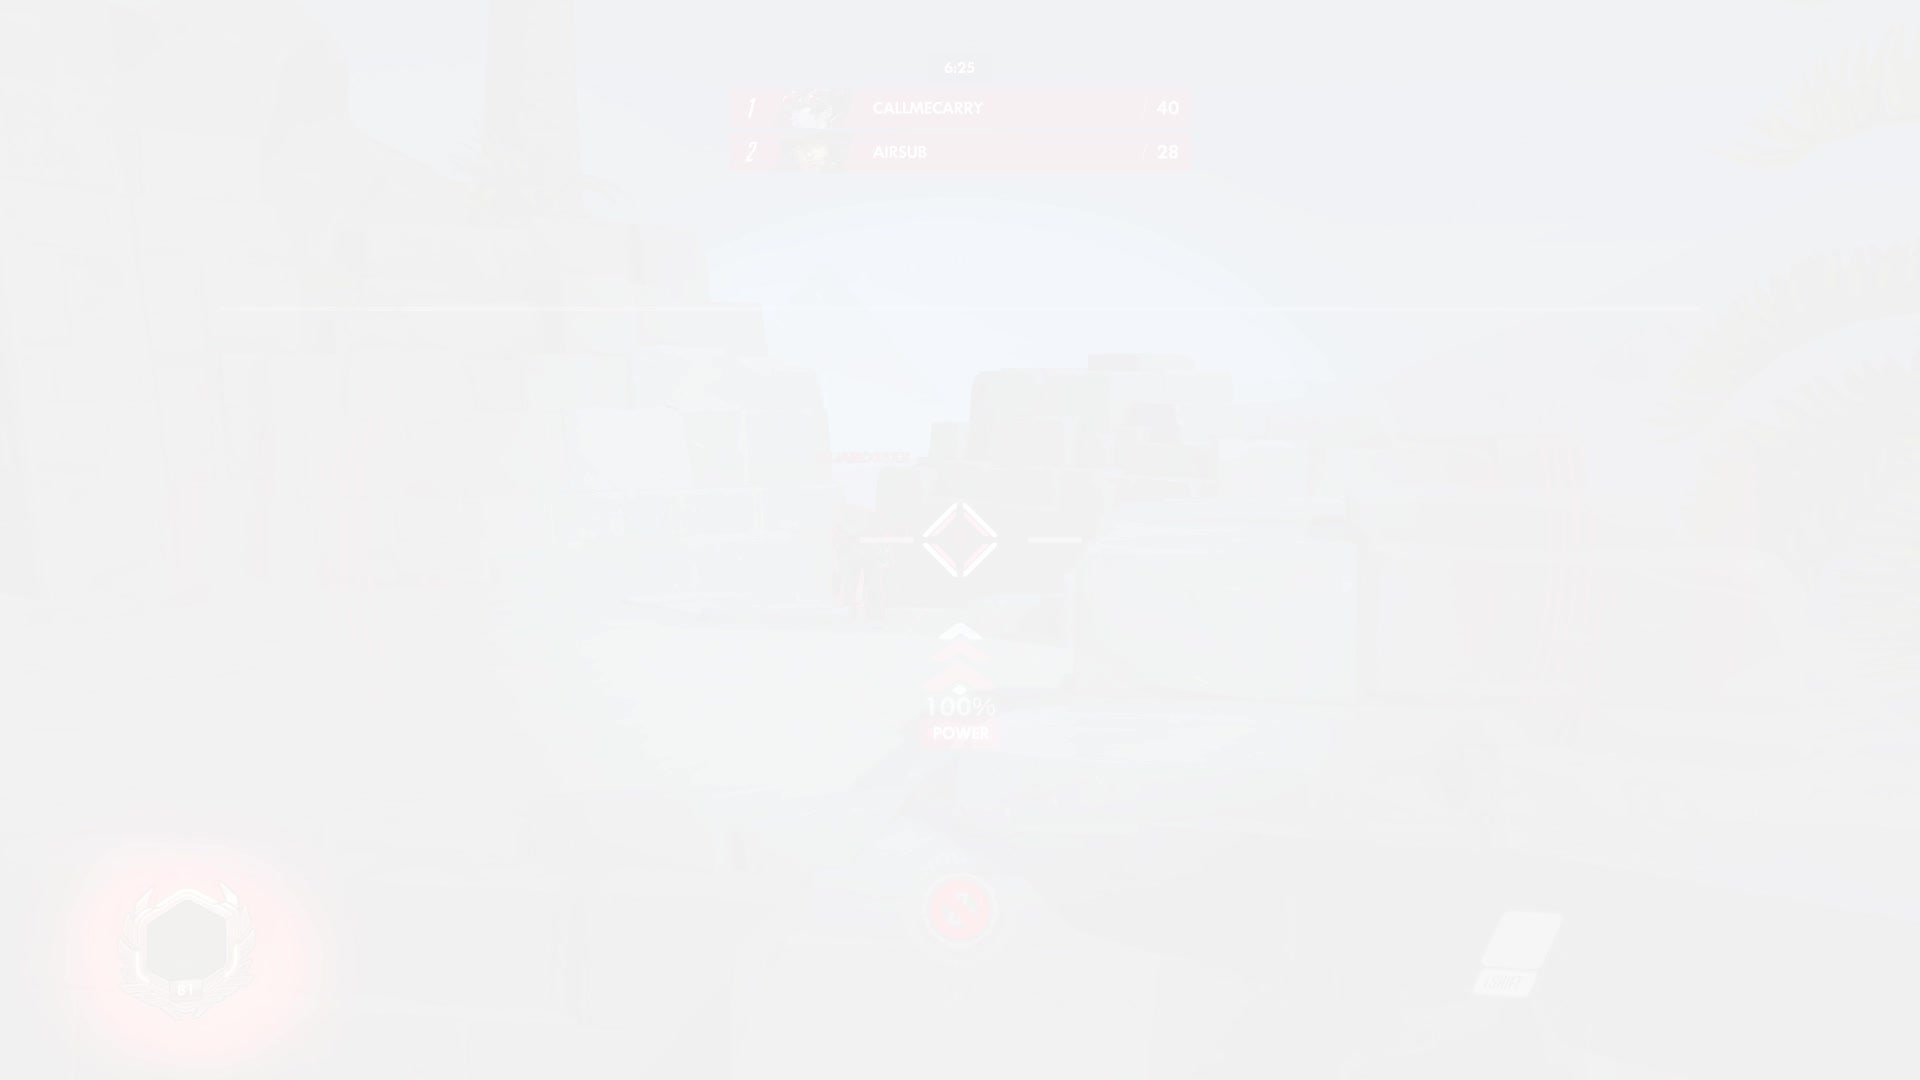 Overwatch: General - Hitscan/Sniper HS only  video cover image 0